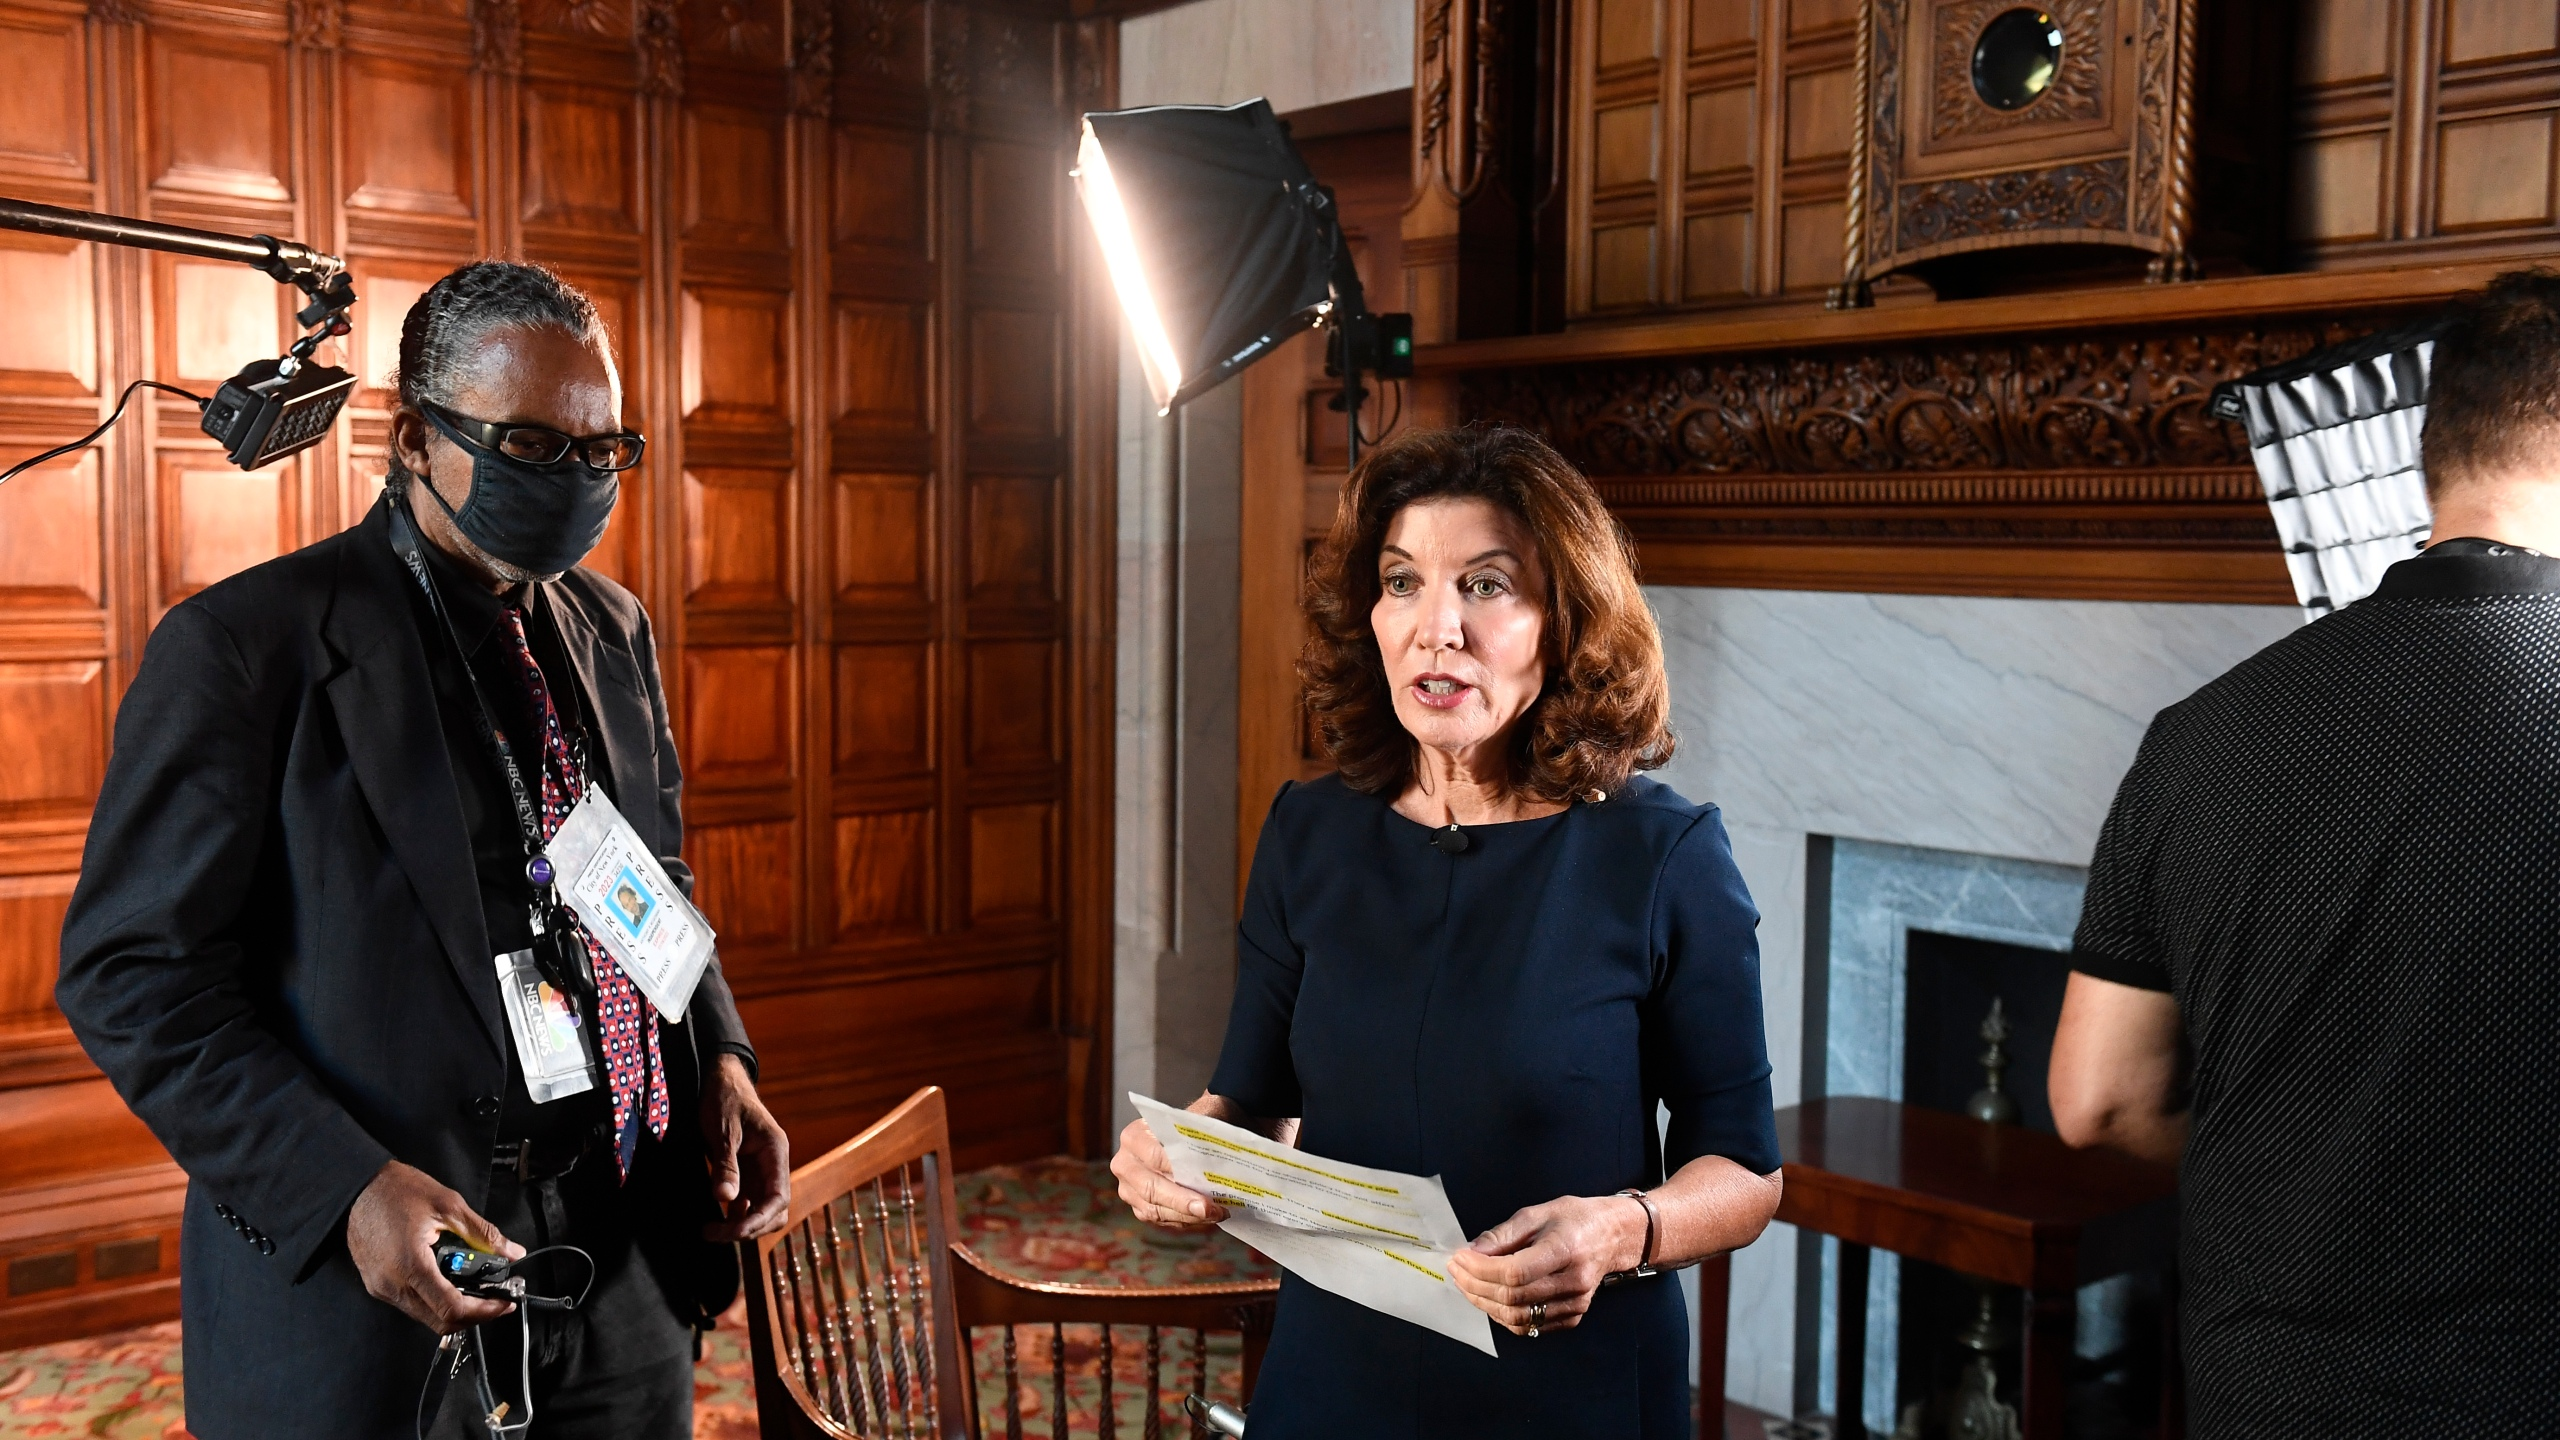 New York Lt. Governor Kathy Hochul speaks with a news crew before taking part in a remote interview from her office at the state Capitol on Aug. 12, 2021. (Hans Pennink/Associated Press)